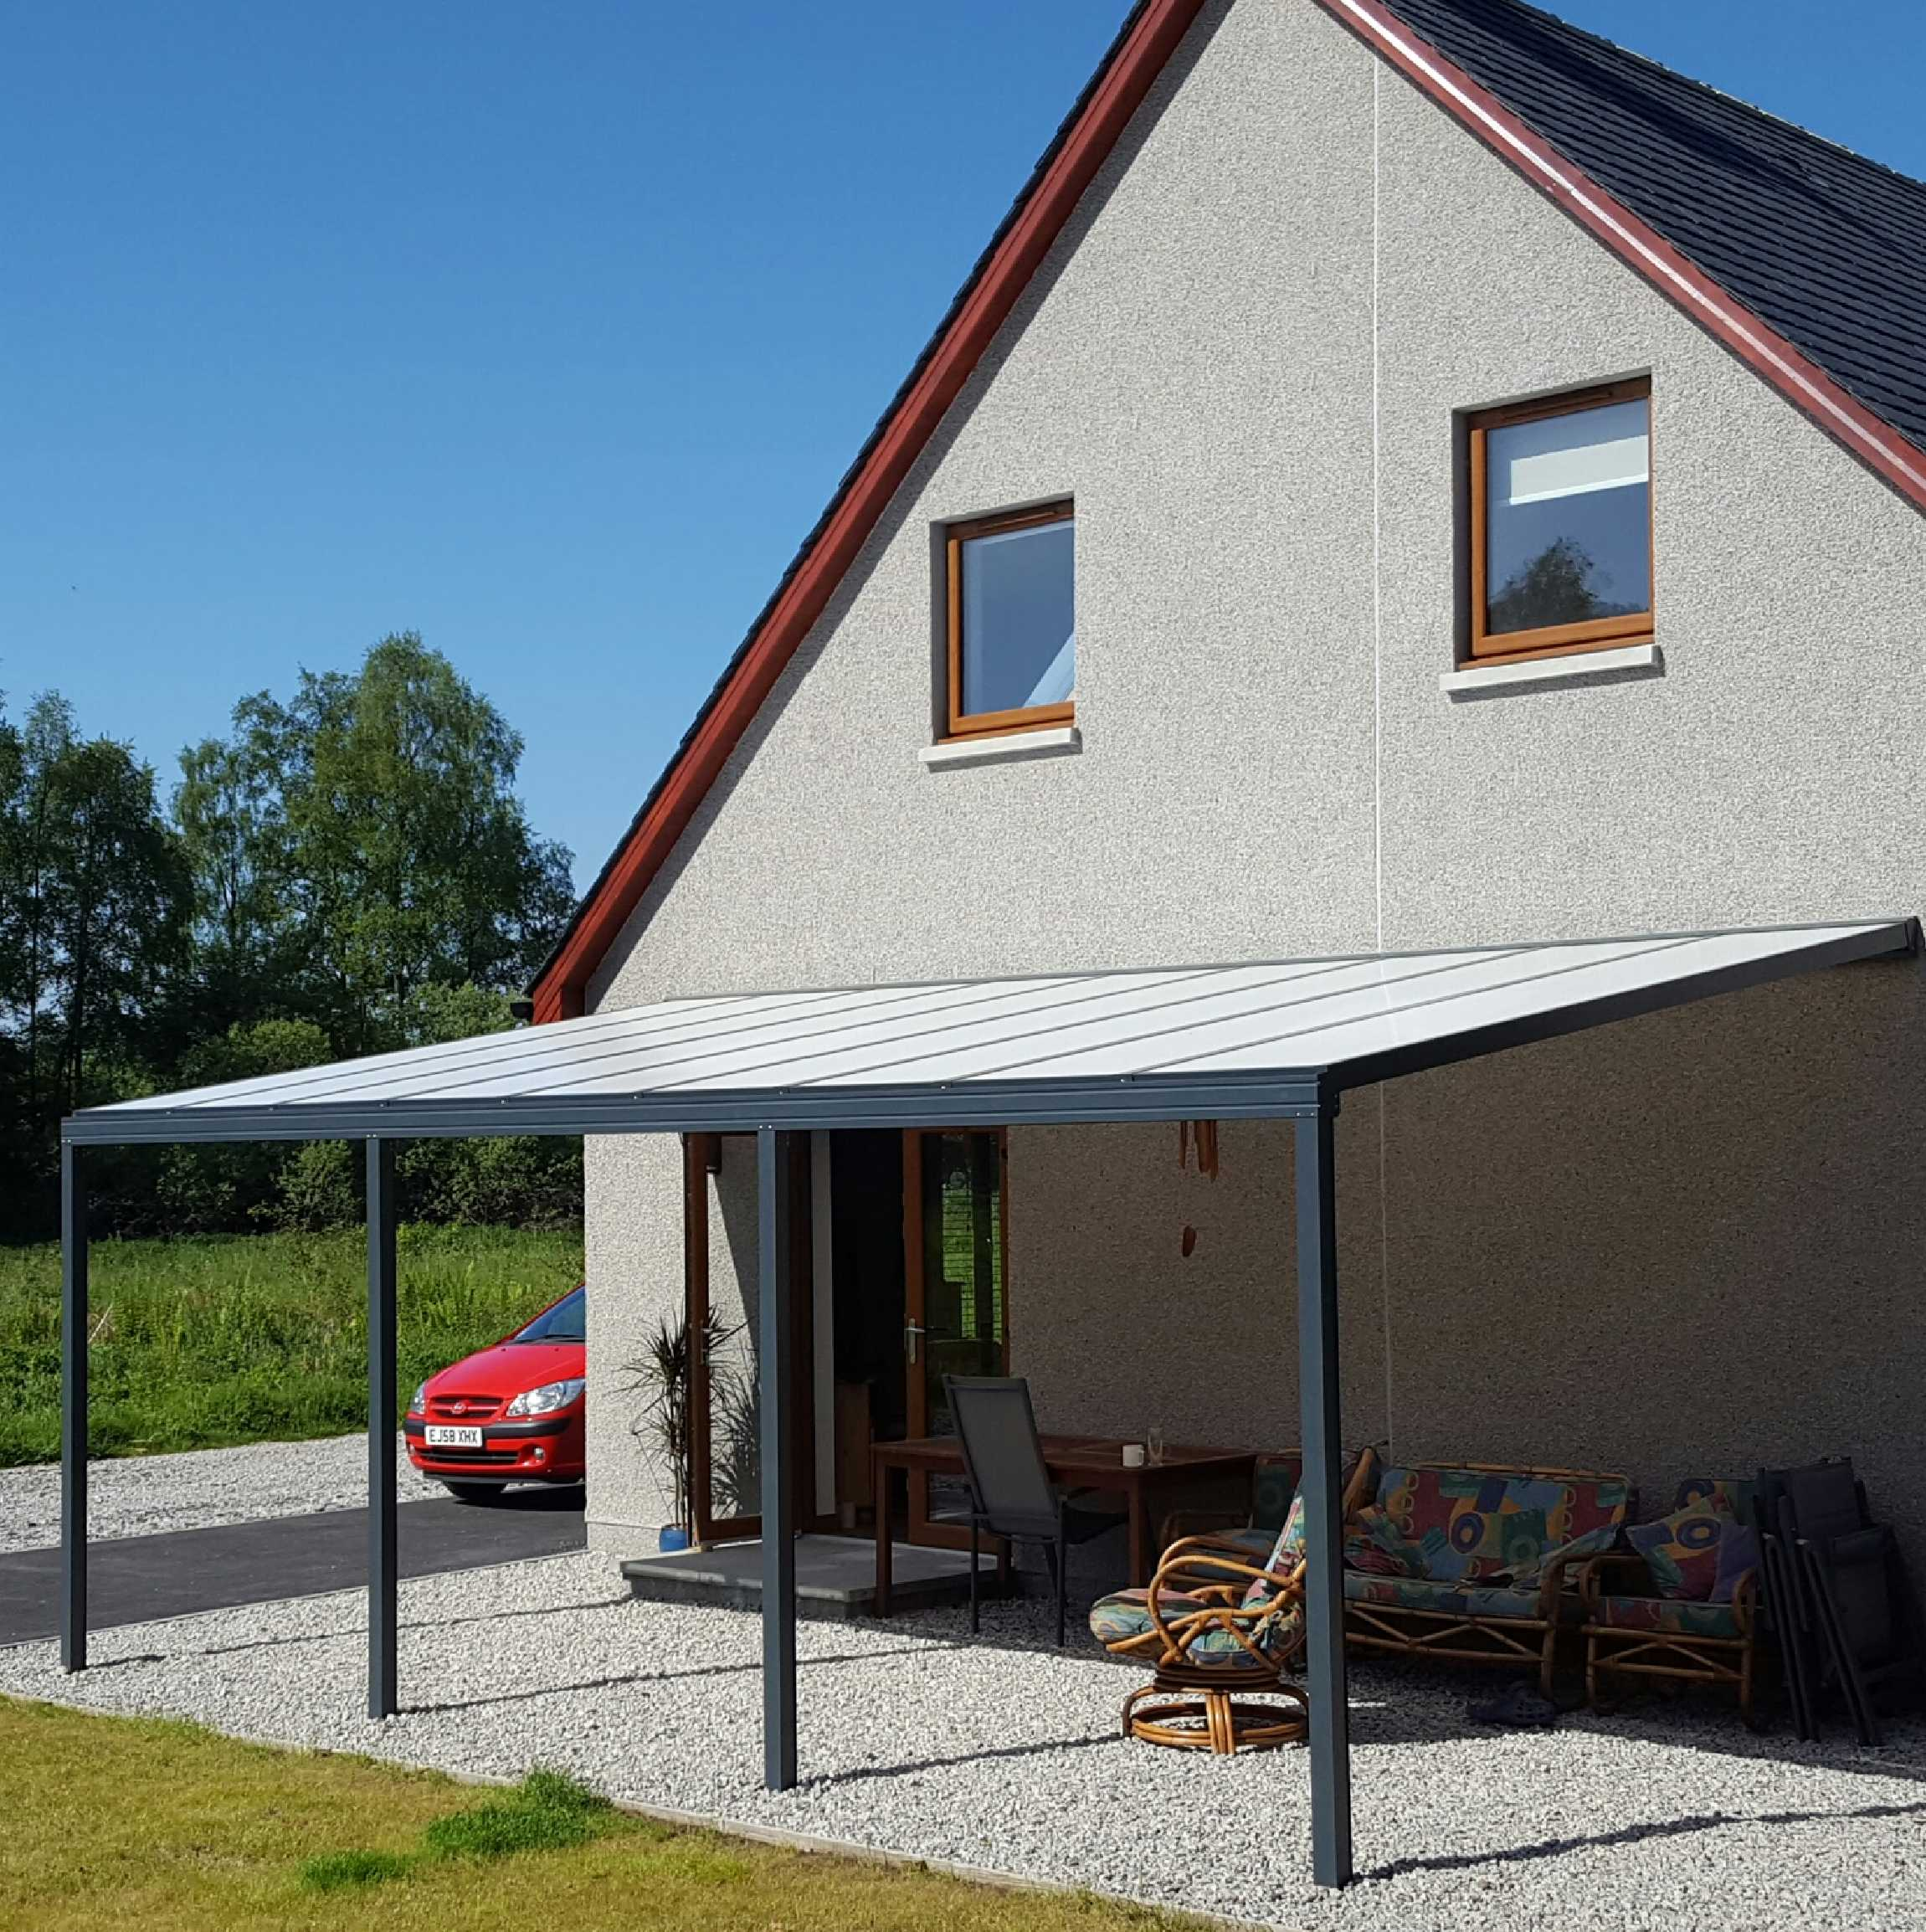 Great selection of Omega Smart Lean-To Canopy, Anthracite Grey, 16mm Polycarbonate Glazing - 6.0m (W) x 1.5m (P), (3) Supporting Posts